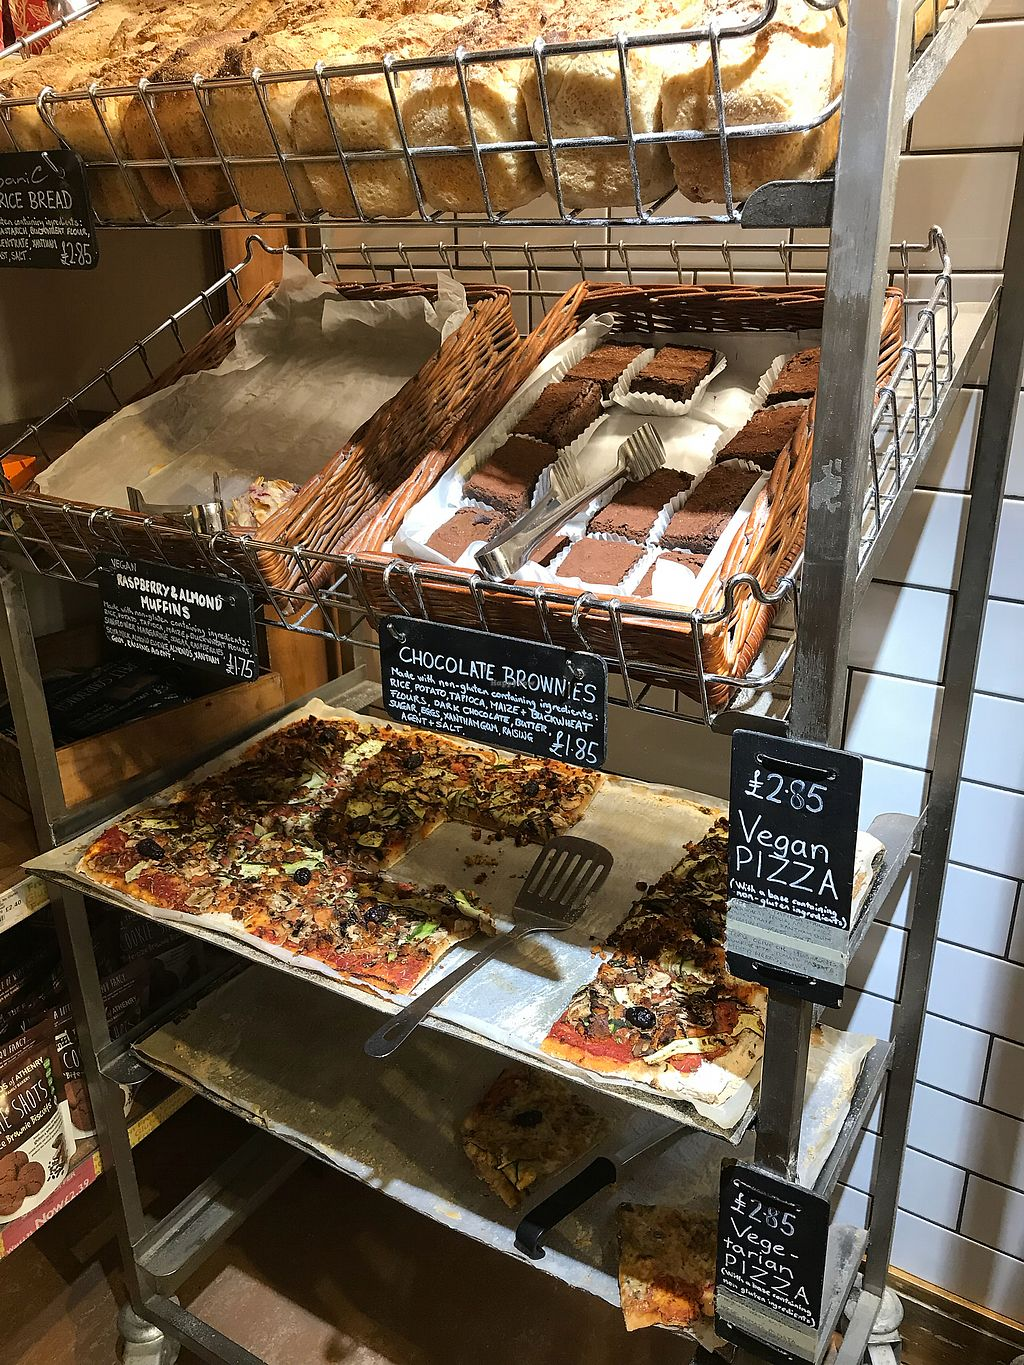 "Photo of Infinity Foods  by <a href=""/members/profile/VickiWanSlattery"">VickiWanSlattery</a> <br/>Vegan pizza in a shop bakery!  <br/> March 17, 2018  - <a href='/contact/abuse/image/628/371971'>Report</a>"